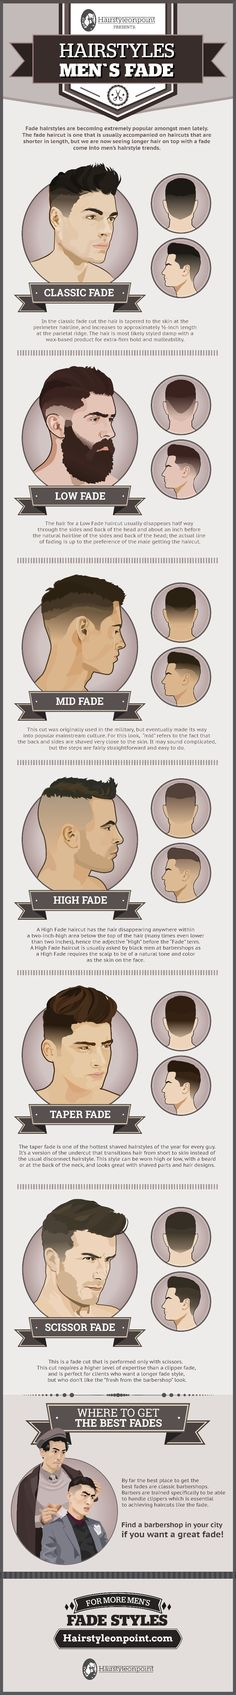 Mens Haircut guide